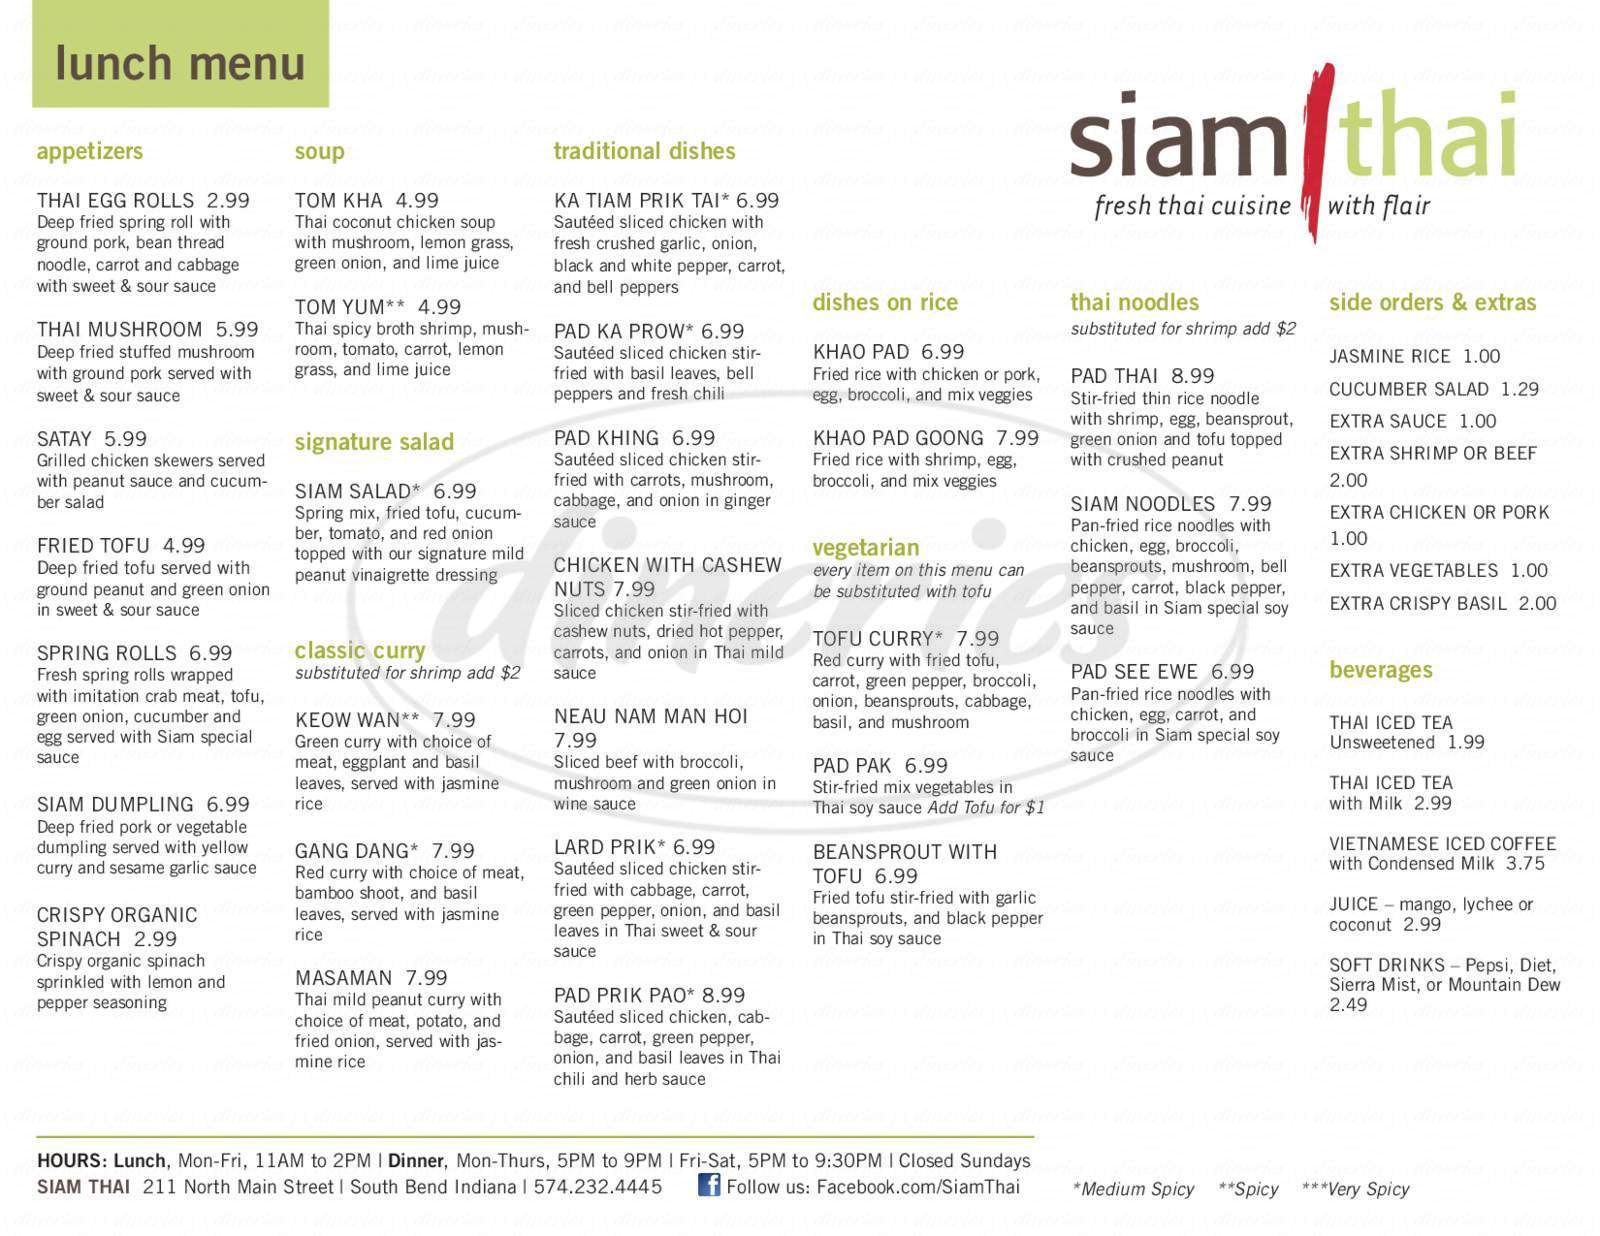 menu for Siam Thai